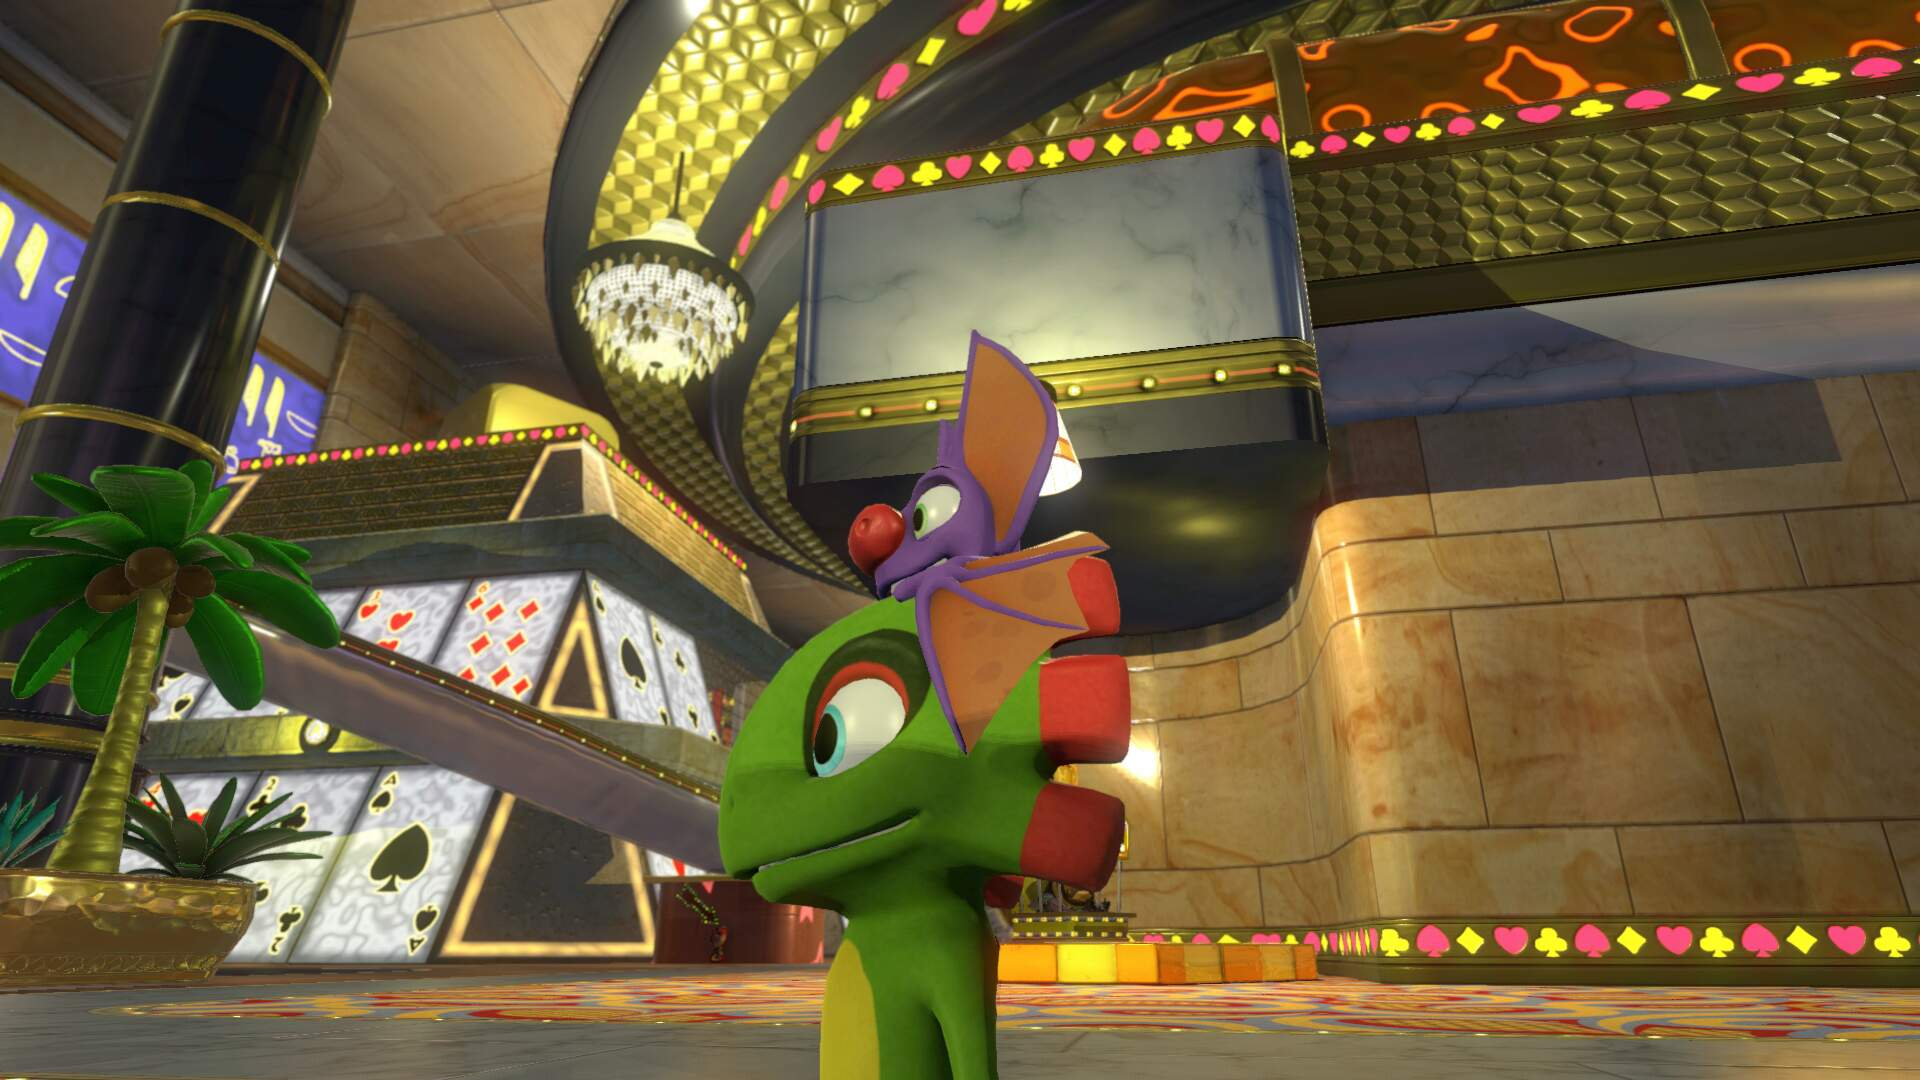 Yooka Laylee Capital Cashino (Casino) - Pagie Locations, Hurdle Hijinx, INEPT World 4 Boss, Butterfly Heart, Power Extender, Play Coin, Mollycool